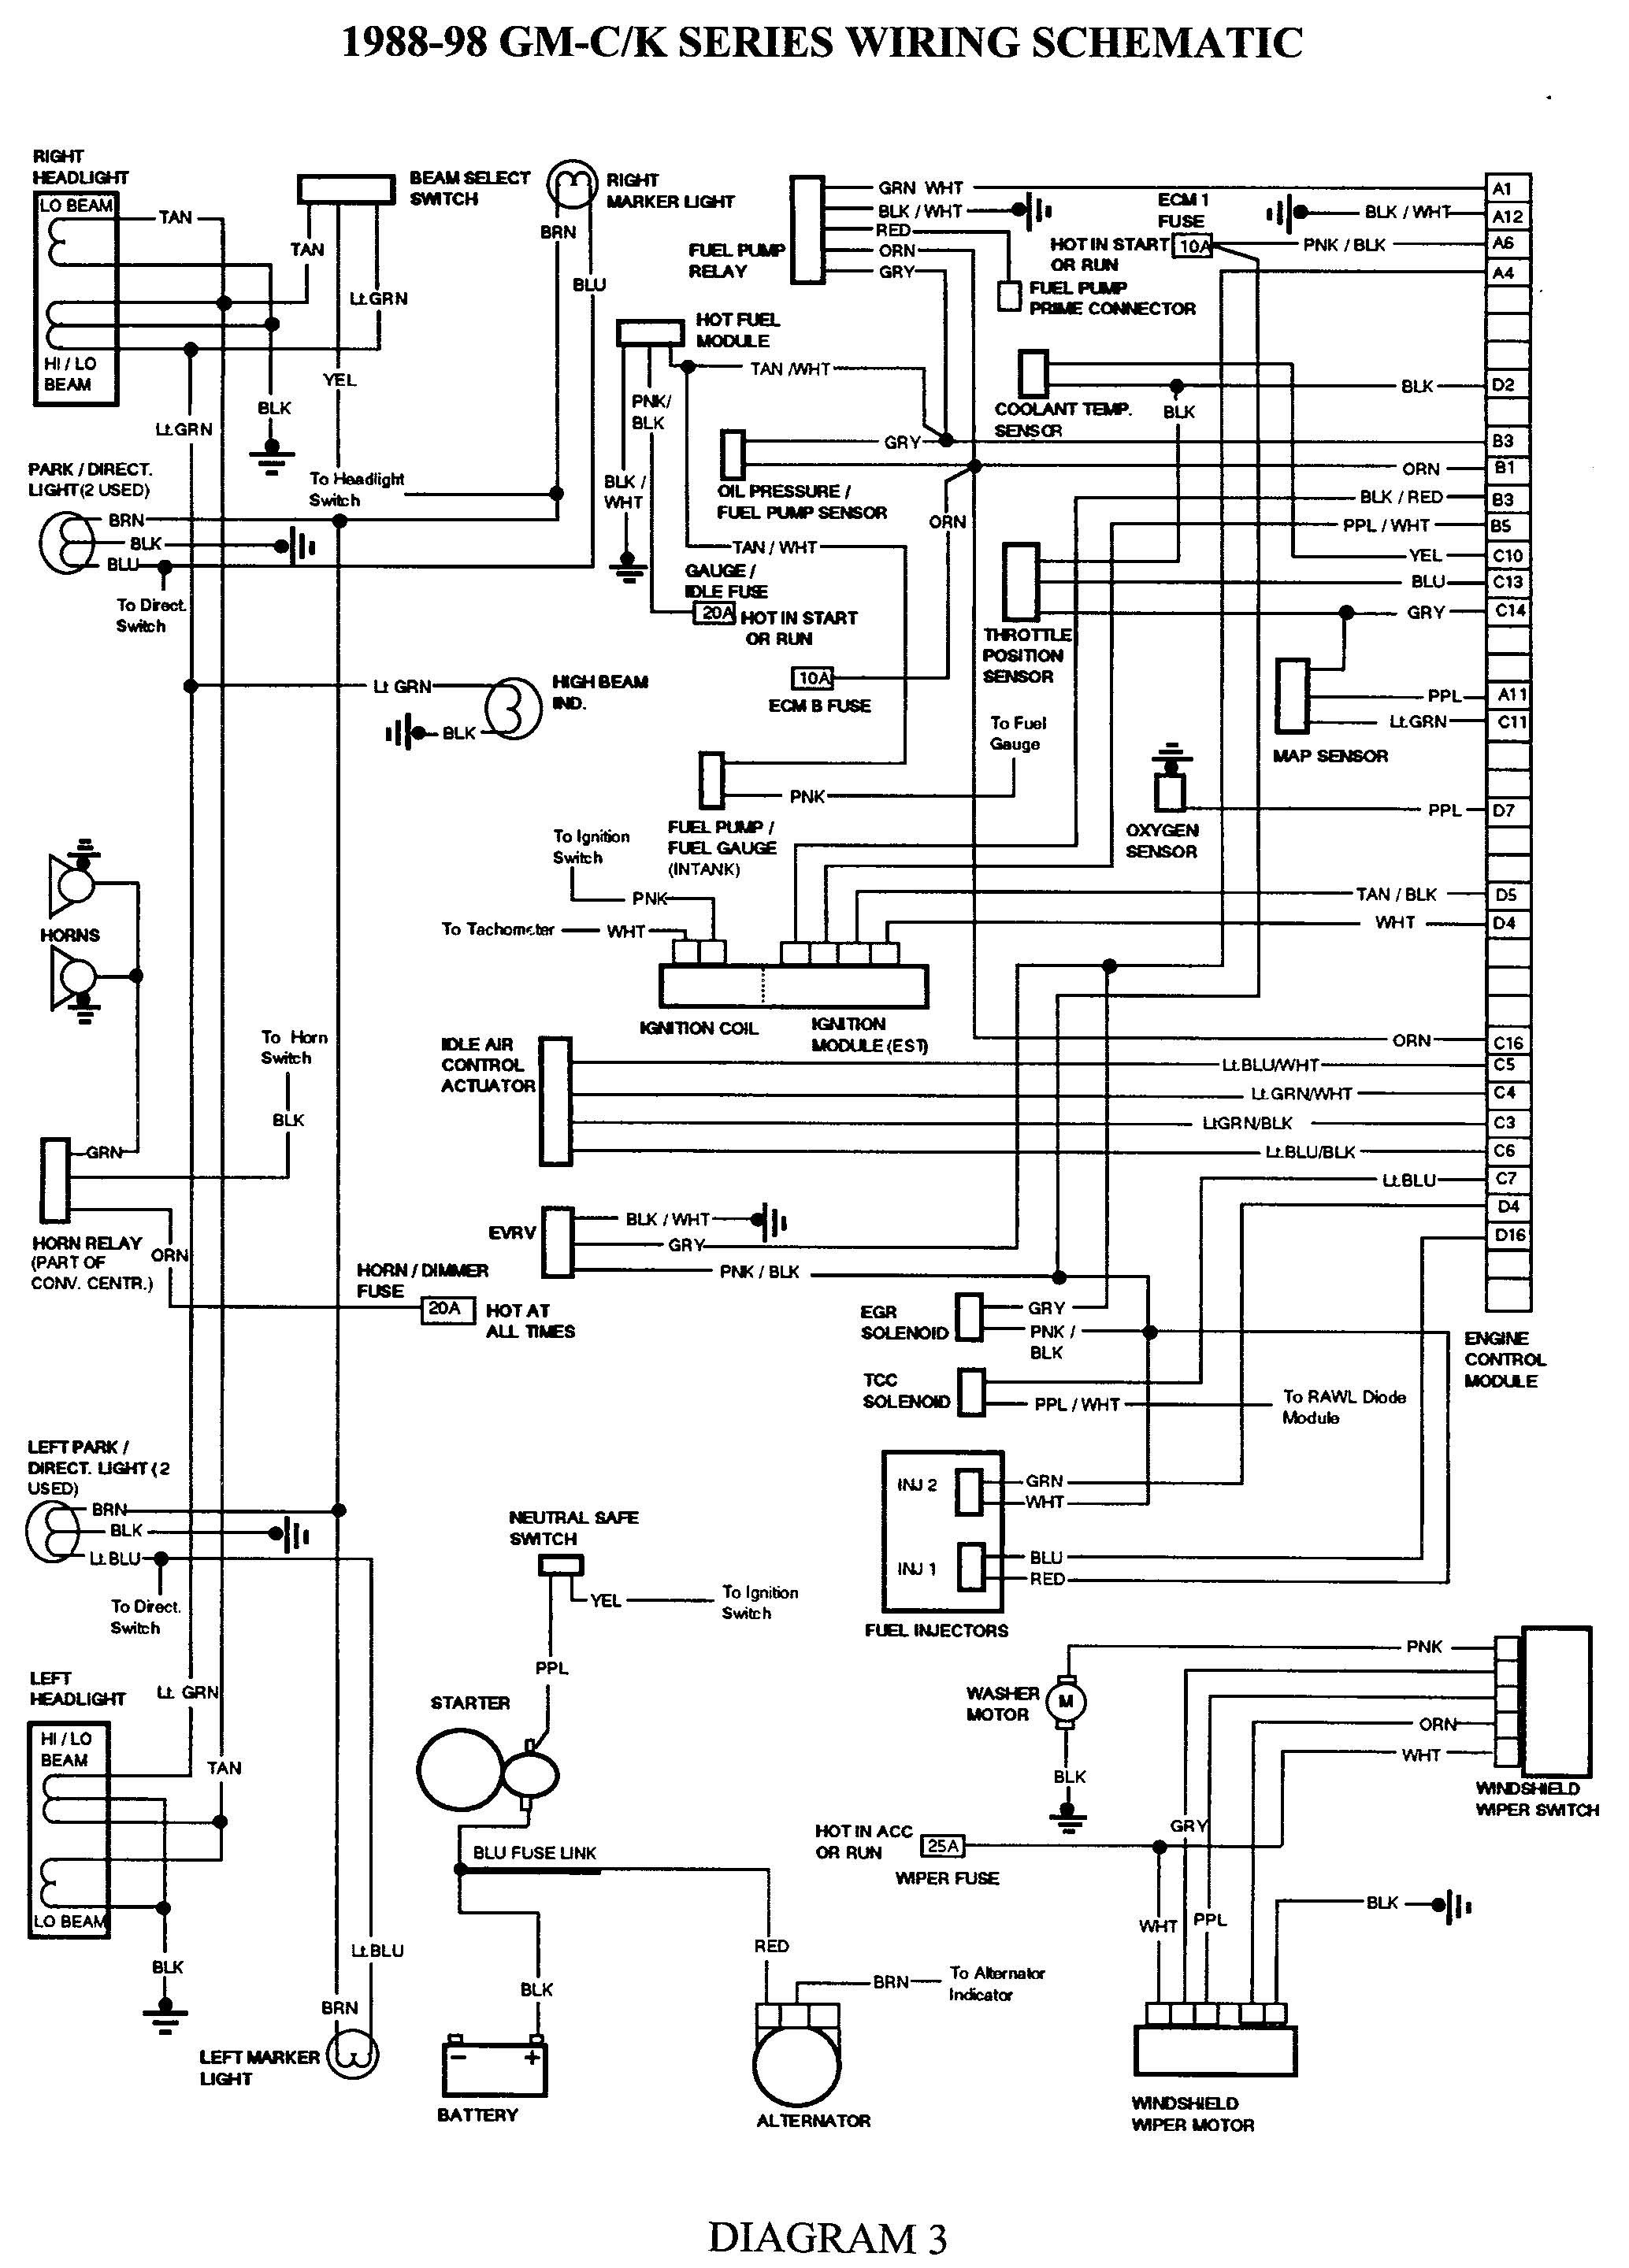 2005 Gmc Sierra Wiring Diagram 98 Gmc Sierra Headlight Wiring Diagram Circuit Diagrams Image Of 2005 Gmc Sierra Wiring Diagram